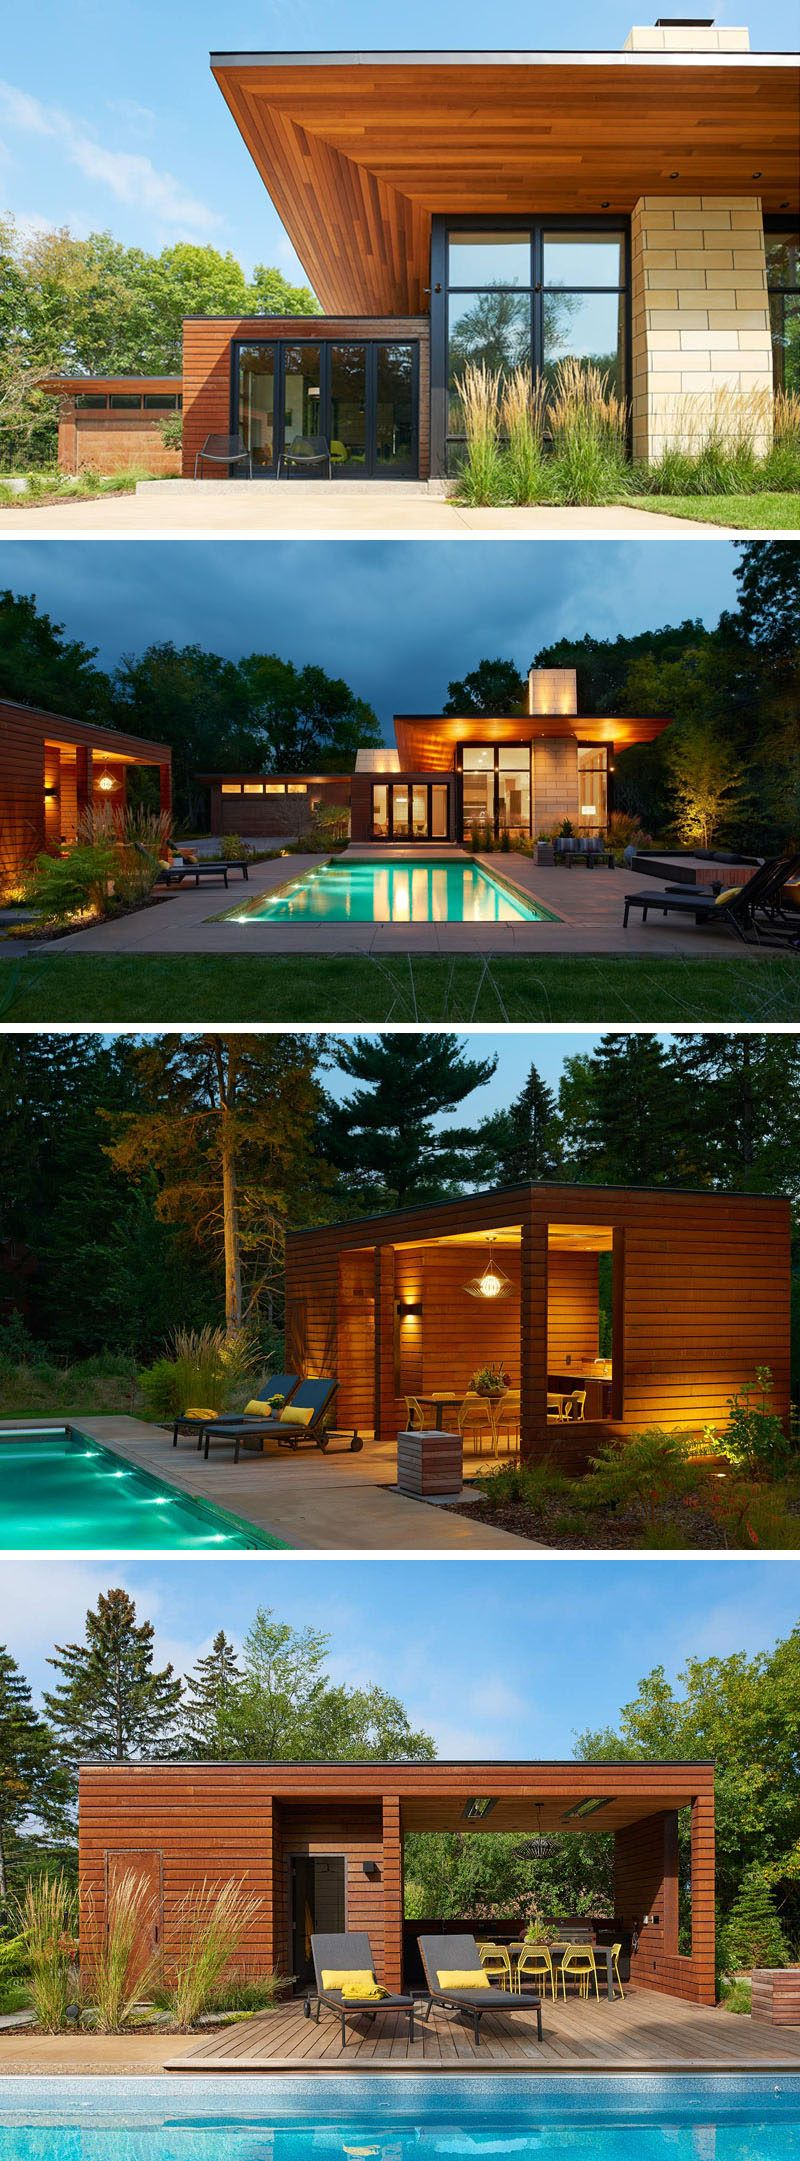 The theodore wirth ranch home by strand design midcentury